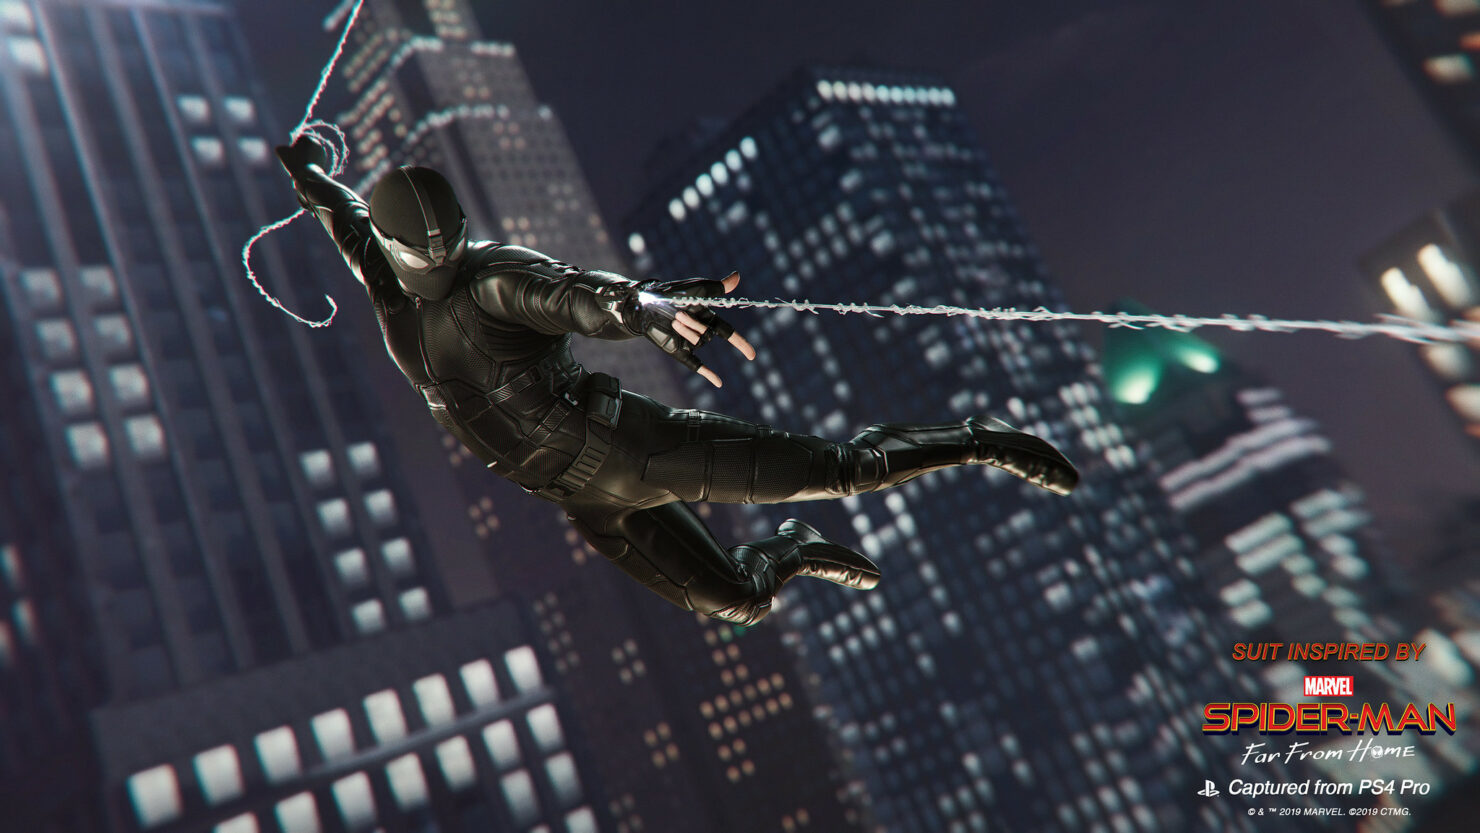 spider-man update 1.16 far from home suits 2